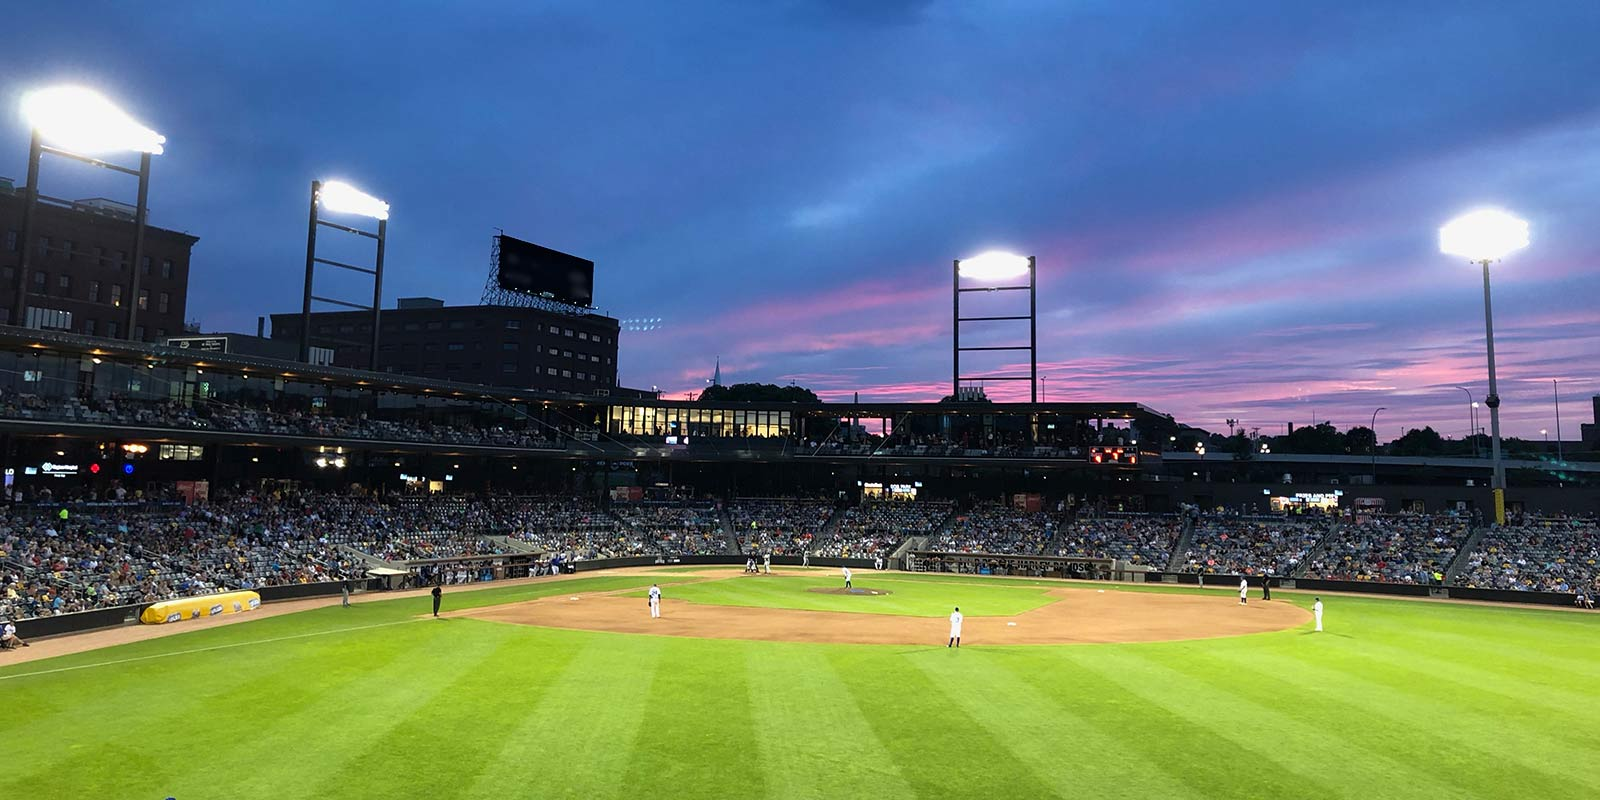 photo of CHS Field at night